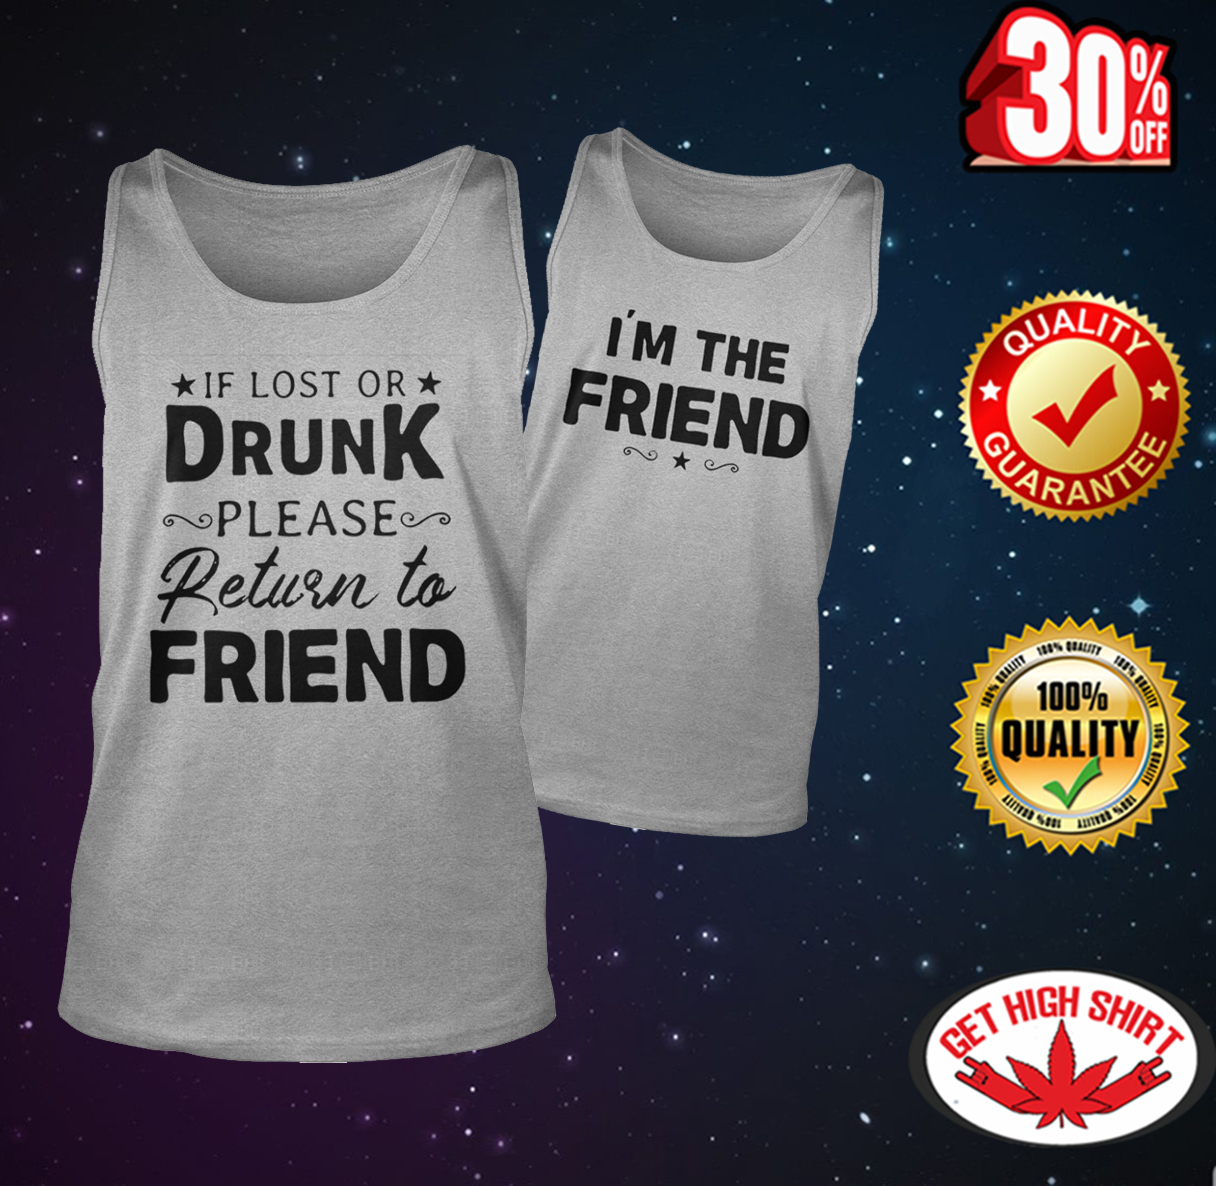 If lost or drunk please return to friend - I'm the friend tank top